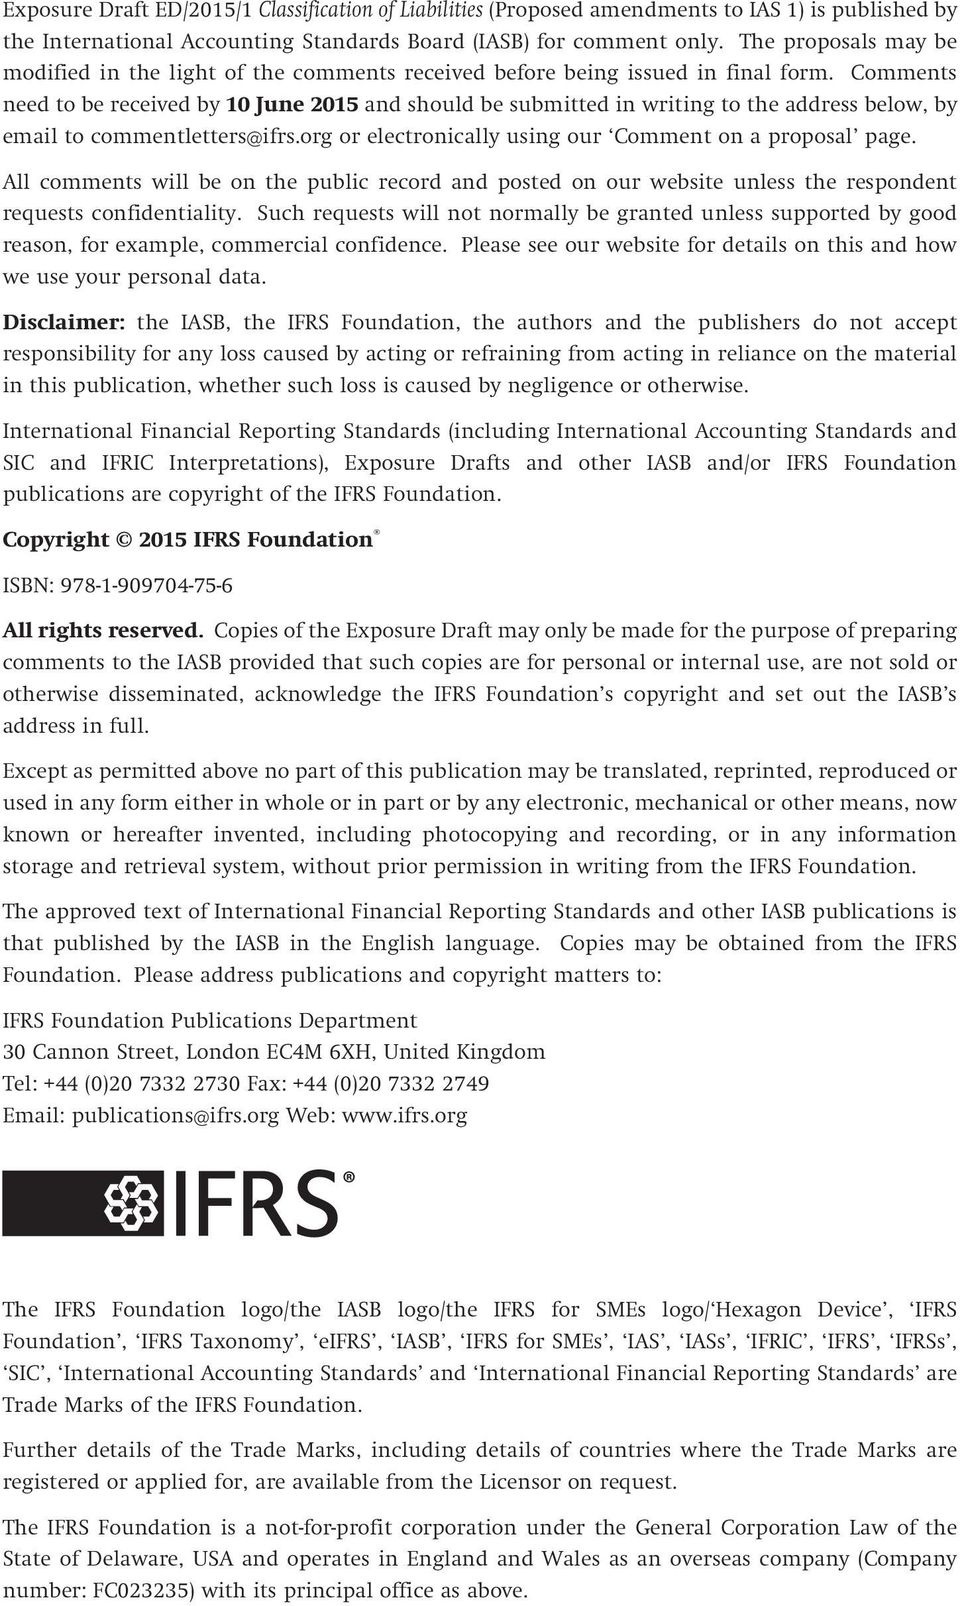 Comments need to be received by 10 June 2015 and should be submitted in writing to the address below, by email to commentletters@ifrs.org or electronically using our Comment on a proposal page.